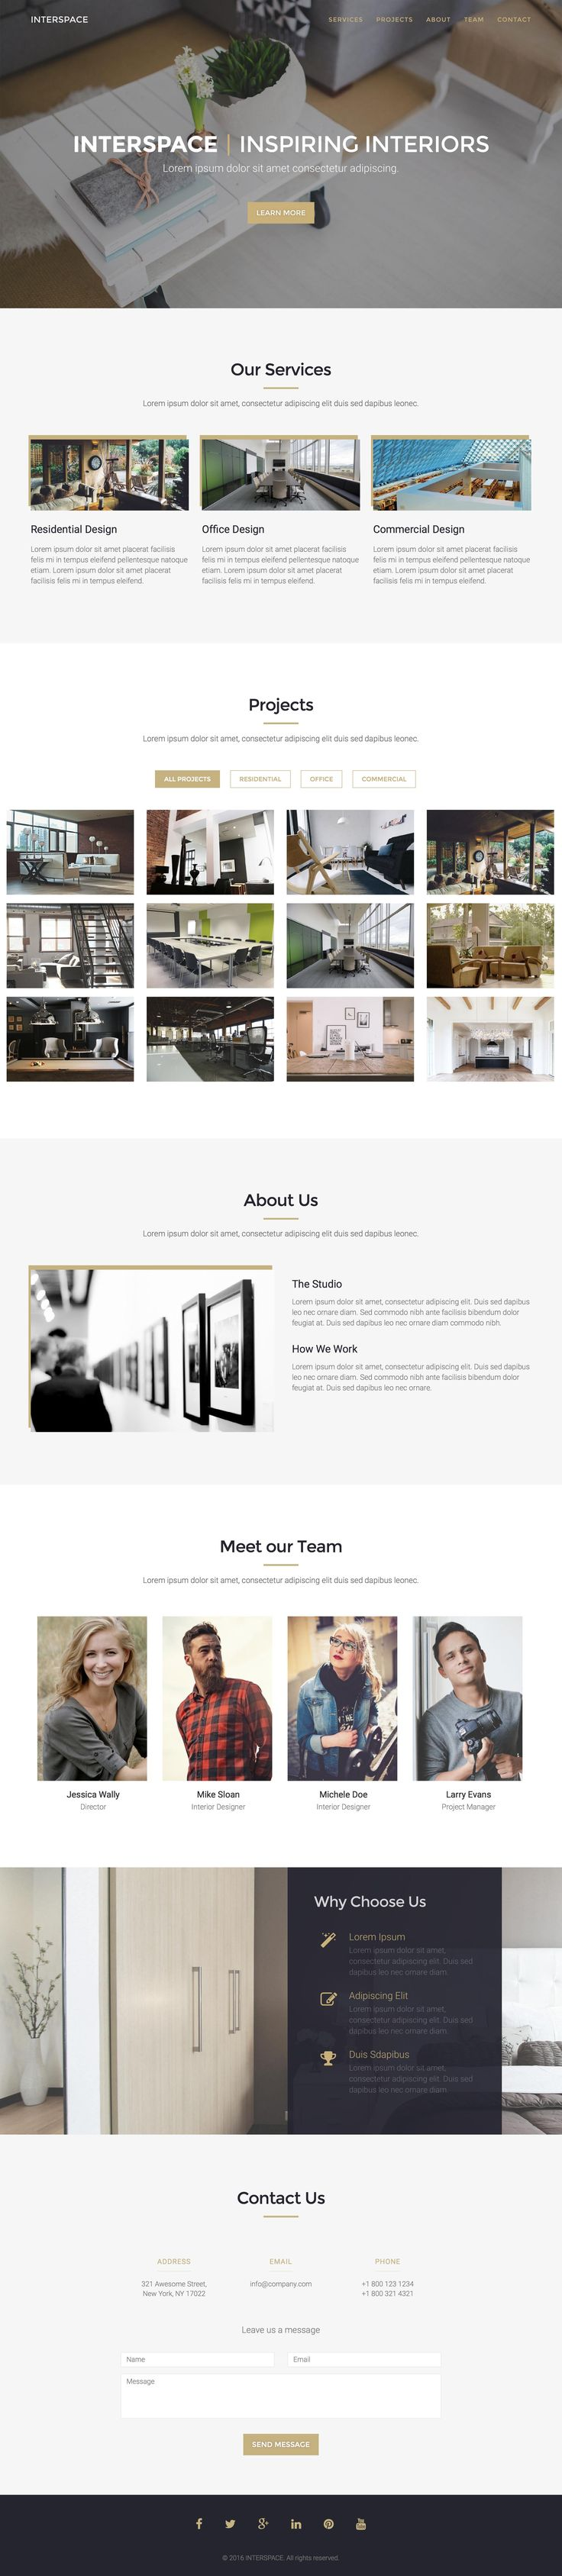 Interspace is a One Page HTML template suited for interior design, furniture and architecture company portfolios. Features include fixed header navigation, image gallery with popup preview and category filter, team and a contact form.